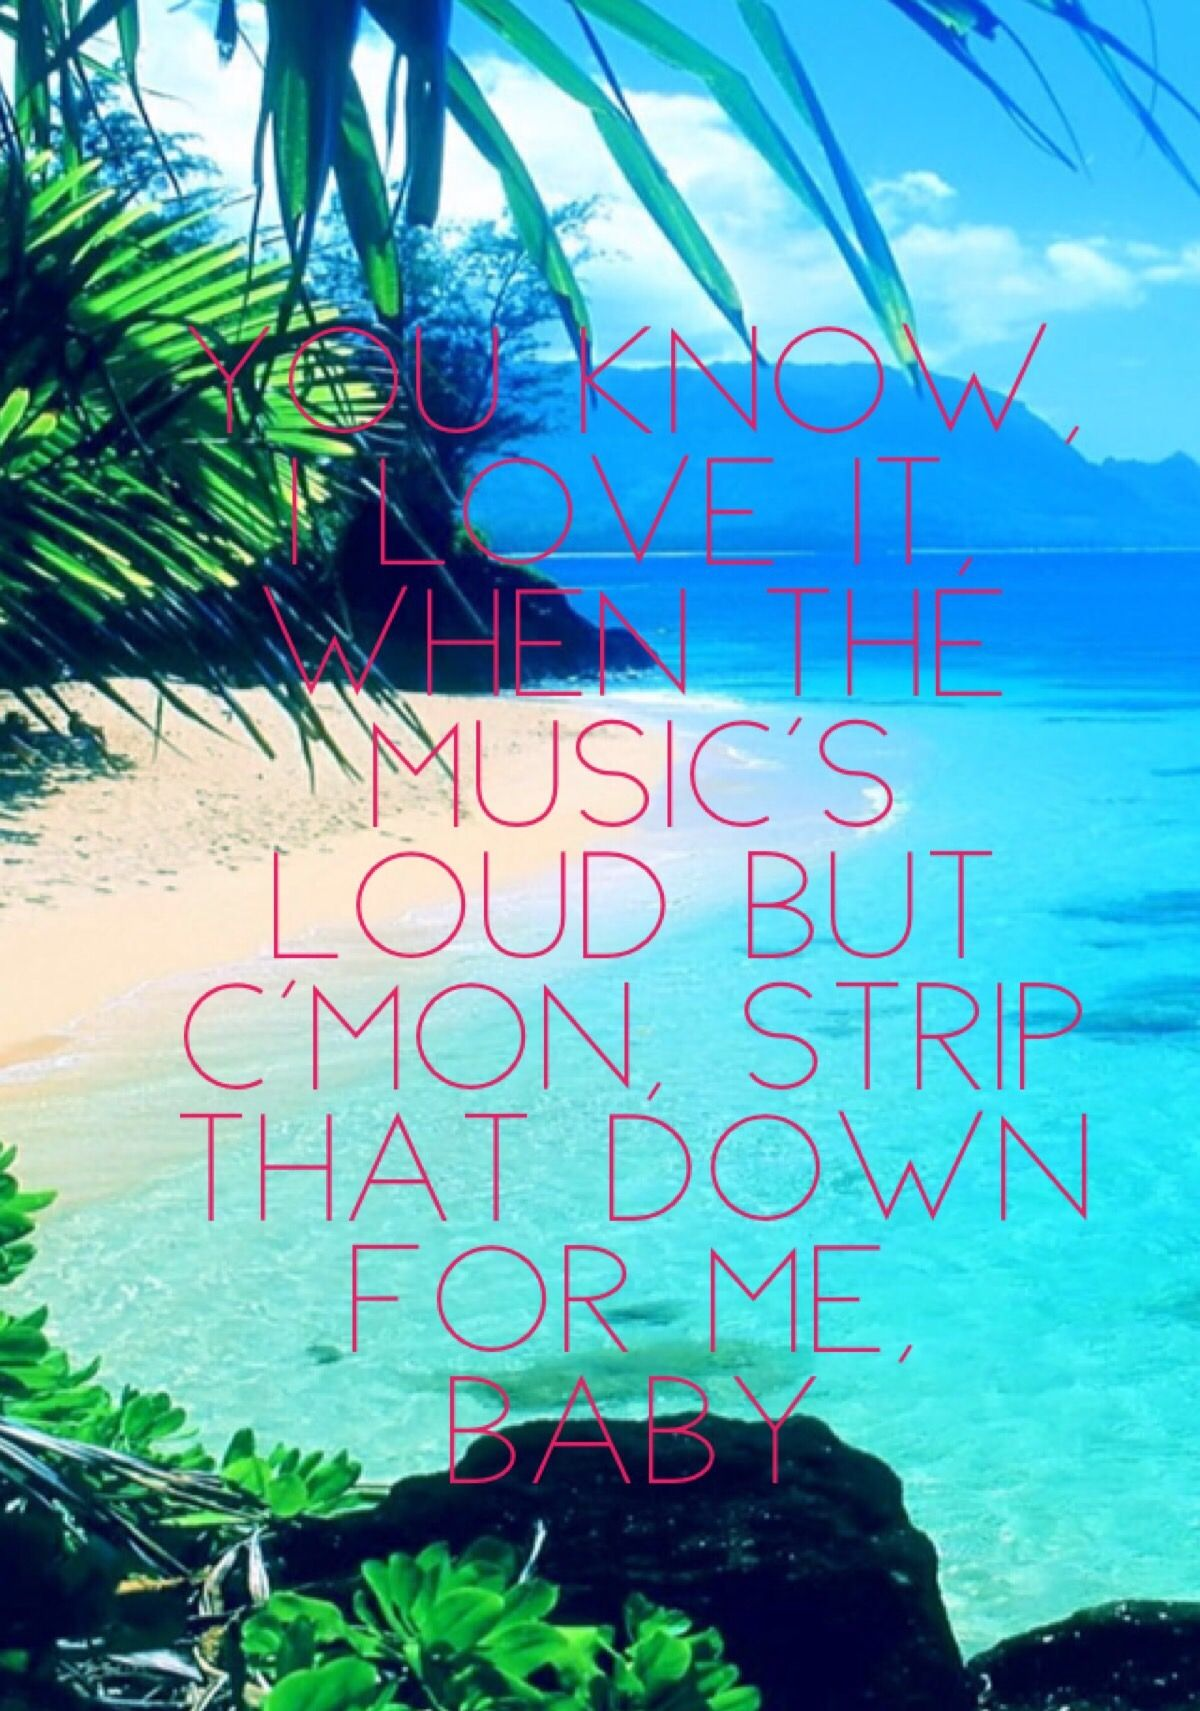 ~Strip That Down~ Liam Payne Lyric Wallpaper #Wallpapers #LiamPayne #Liam #StripThatDown #LyricWallpapers